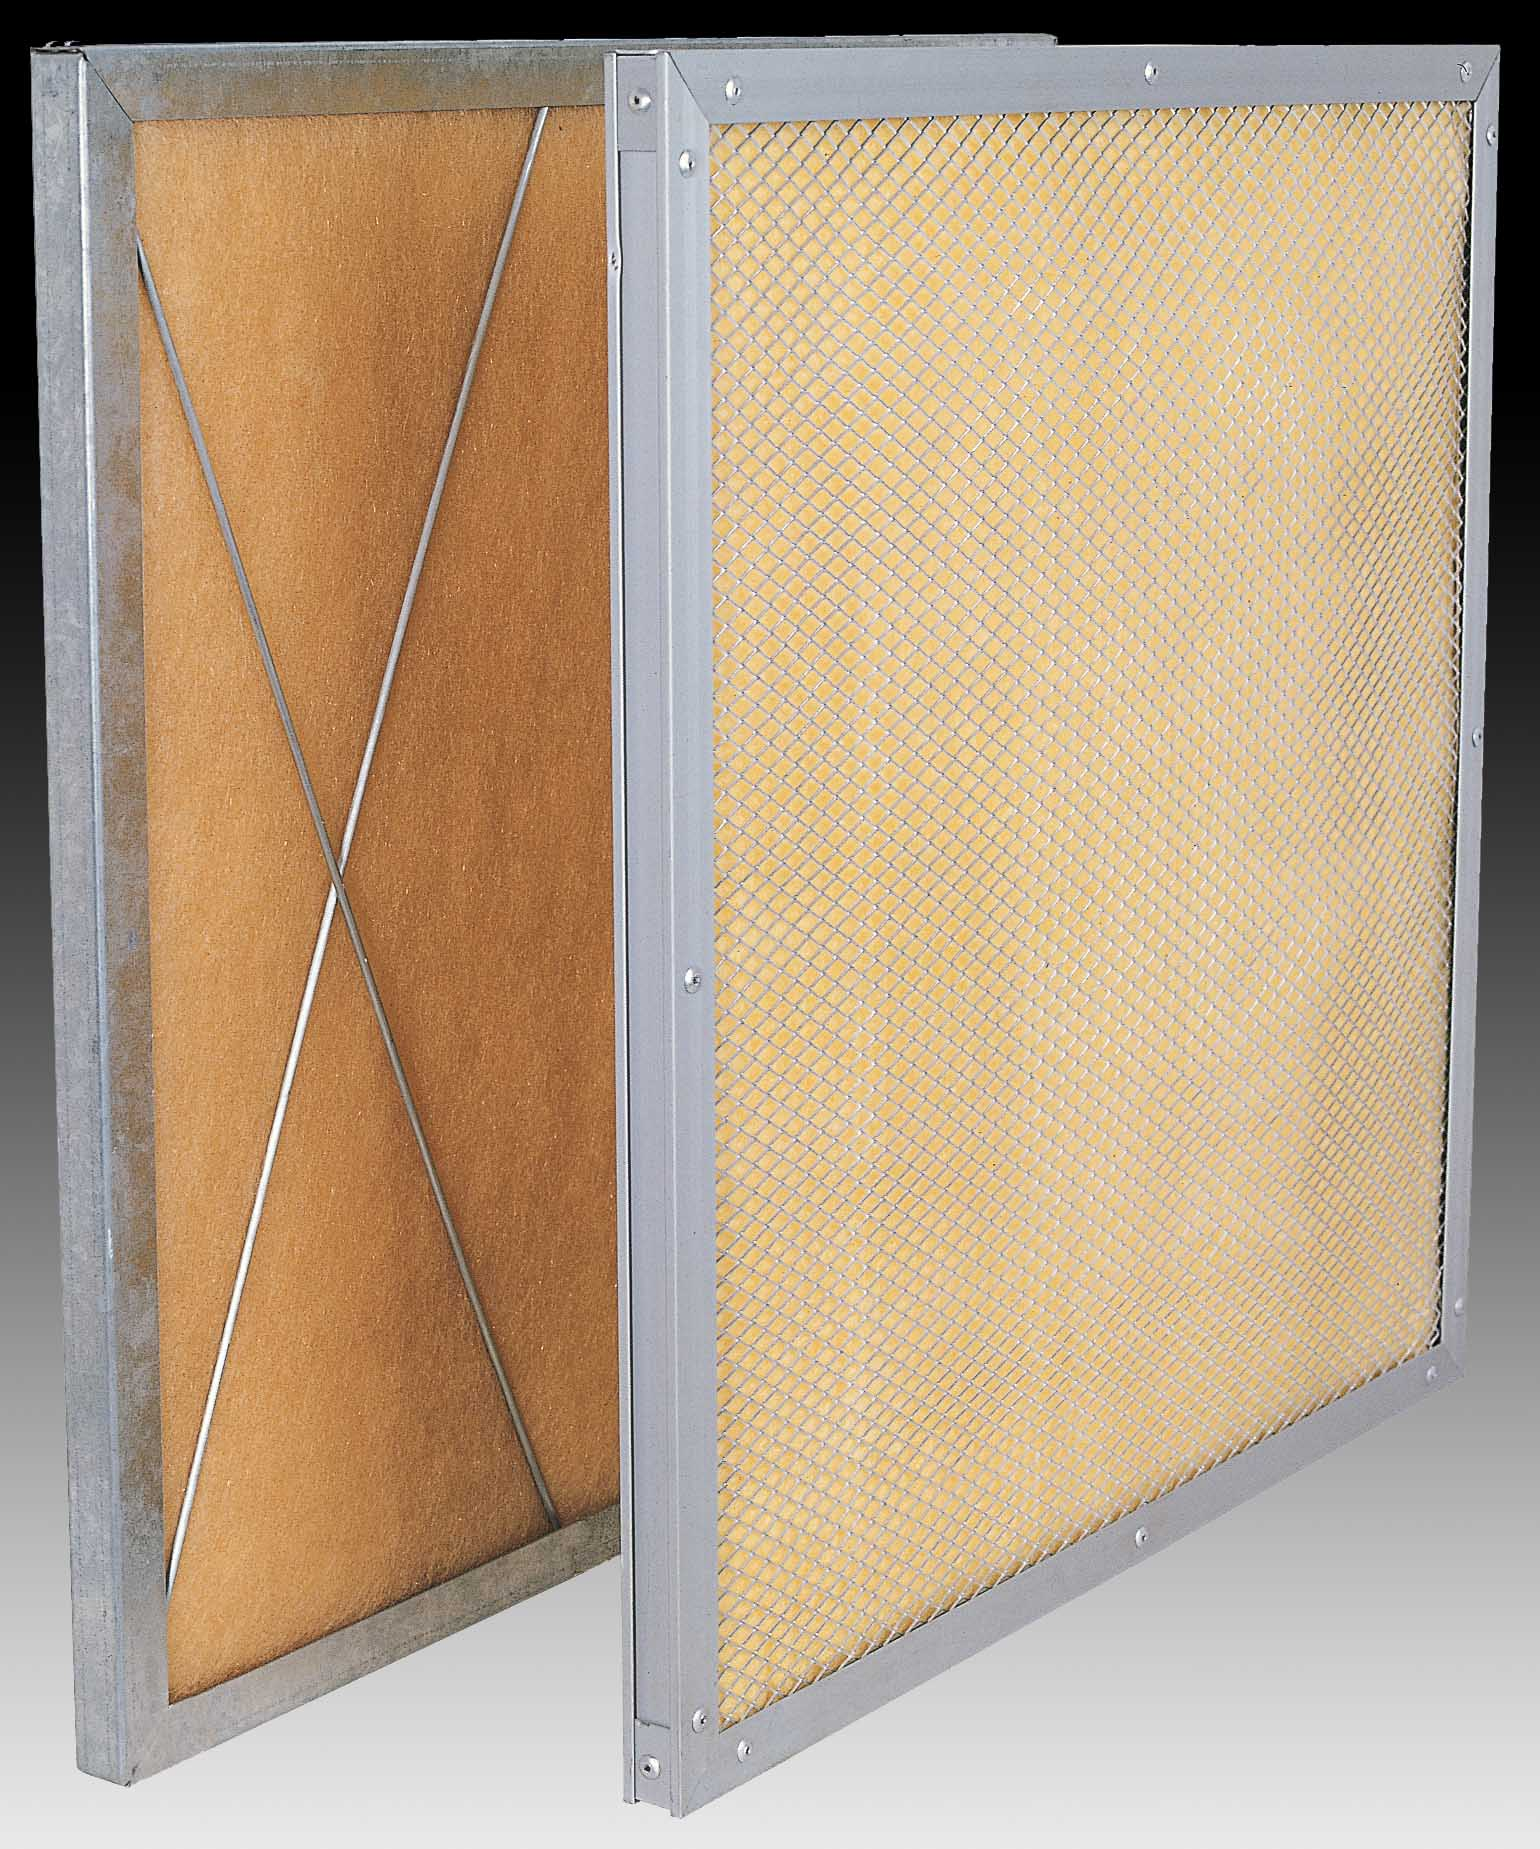 High temperature resistant plank filter